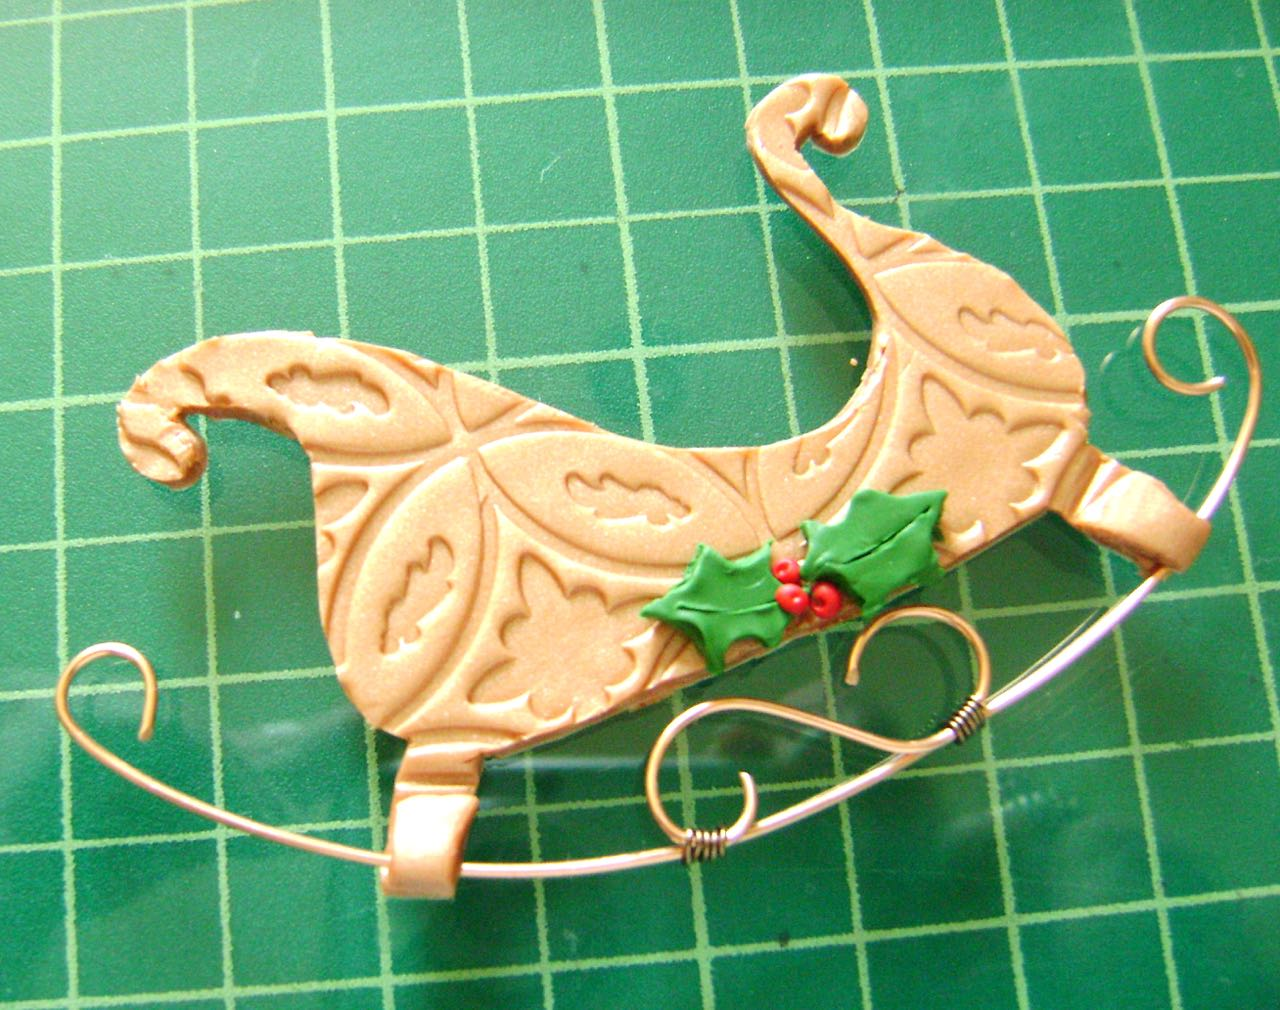 step 10 - Place the runner on the legs of the sleigh. Press lightly into the clay. Cover with the extra leg pieces and press together.